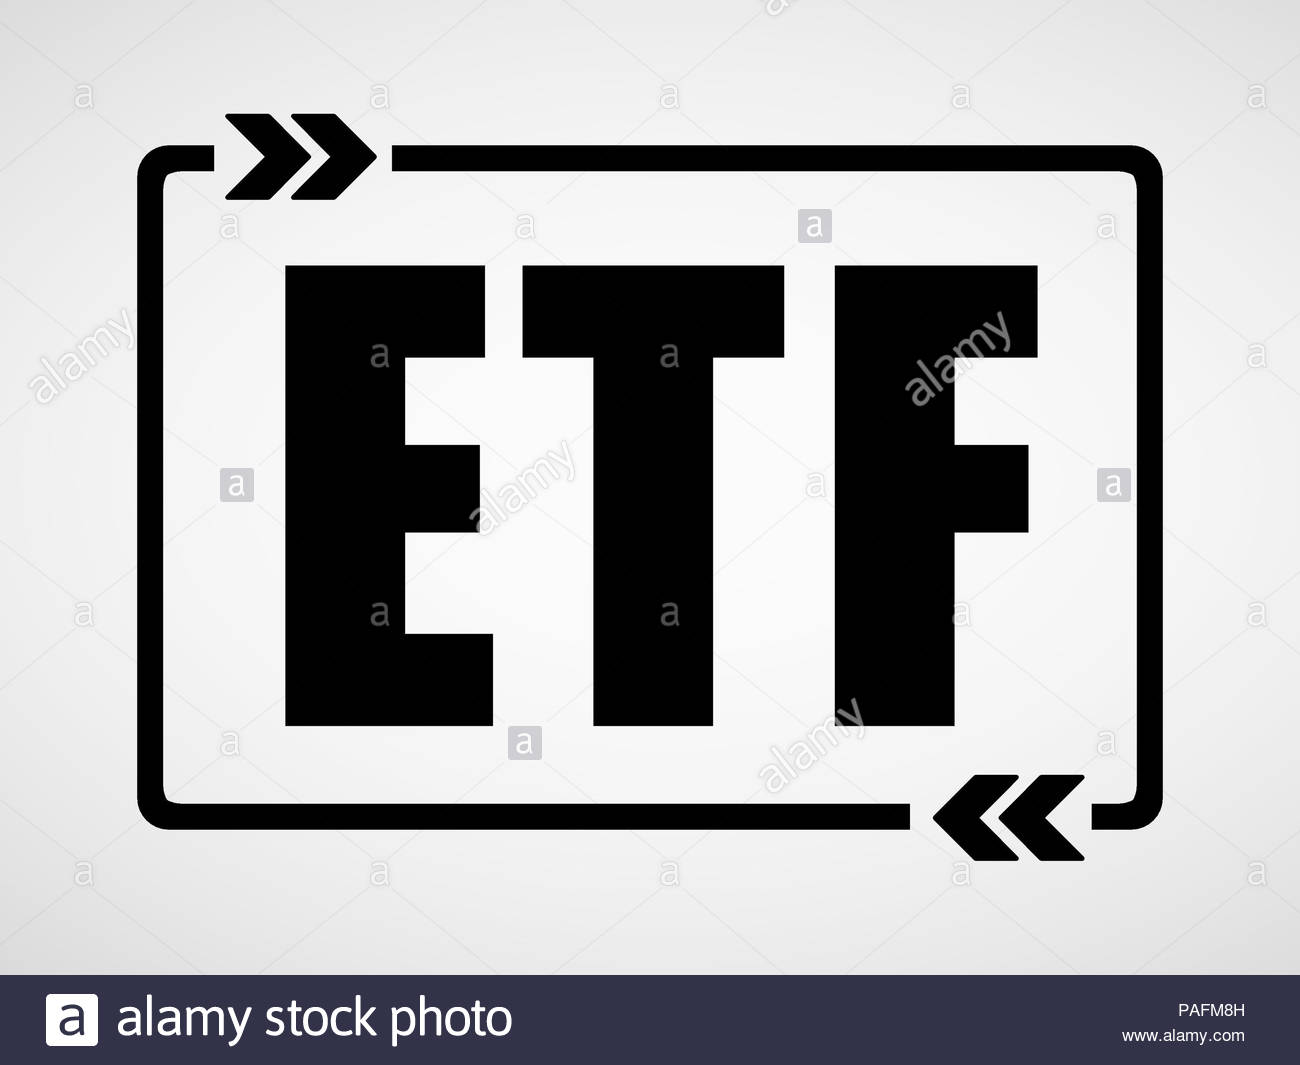 ETF - Exchange-traded fund concept Stock Photo